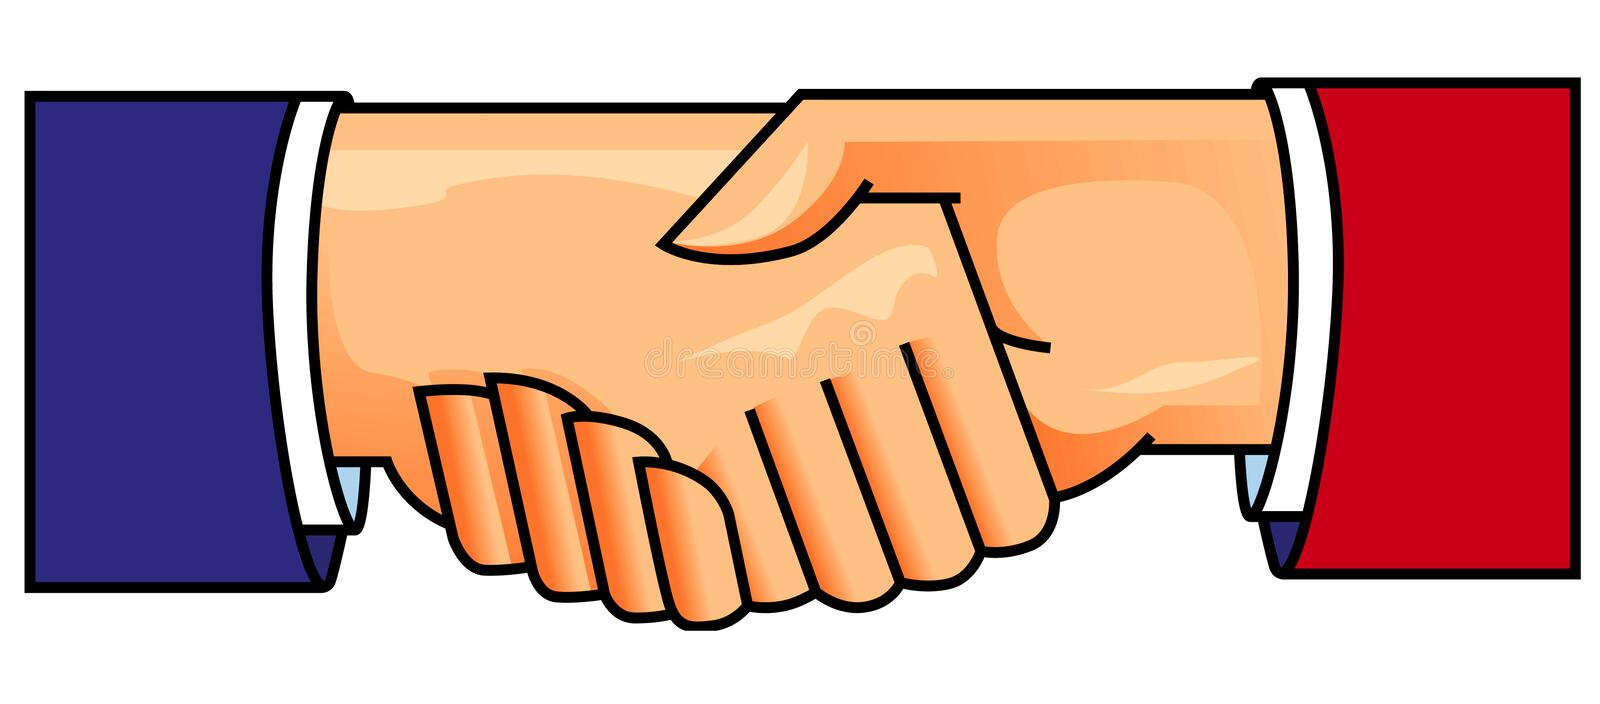 Hand shake stock illustration